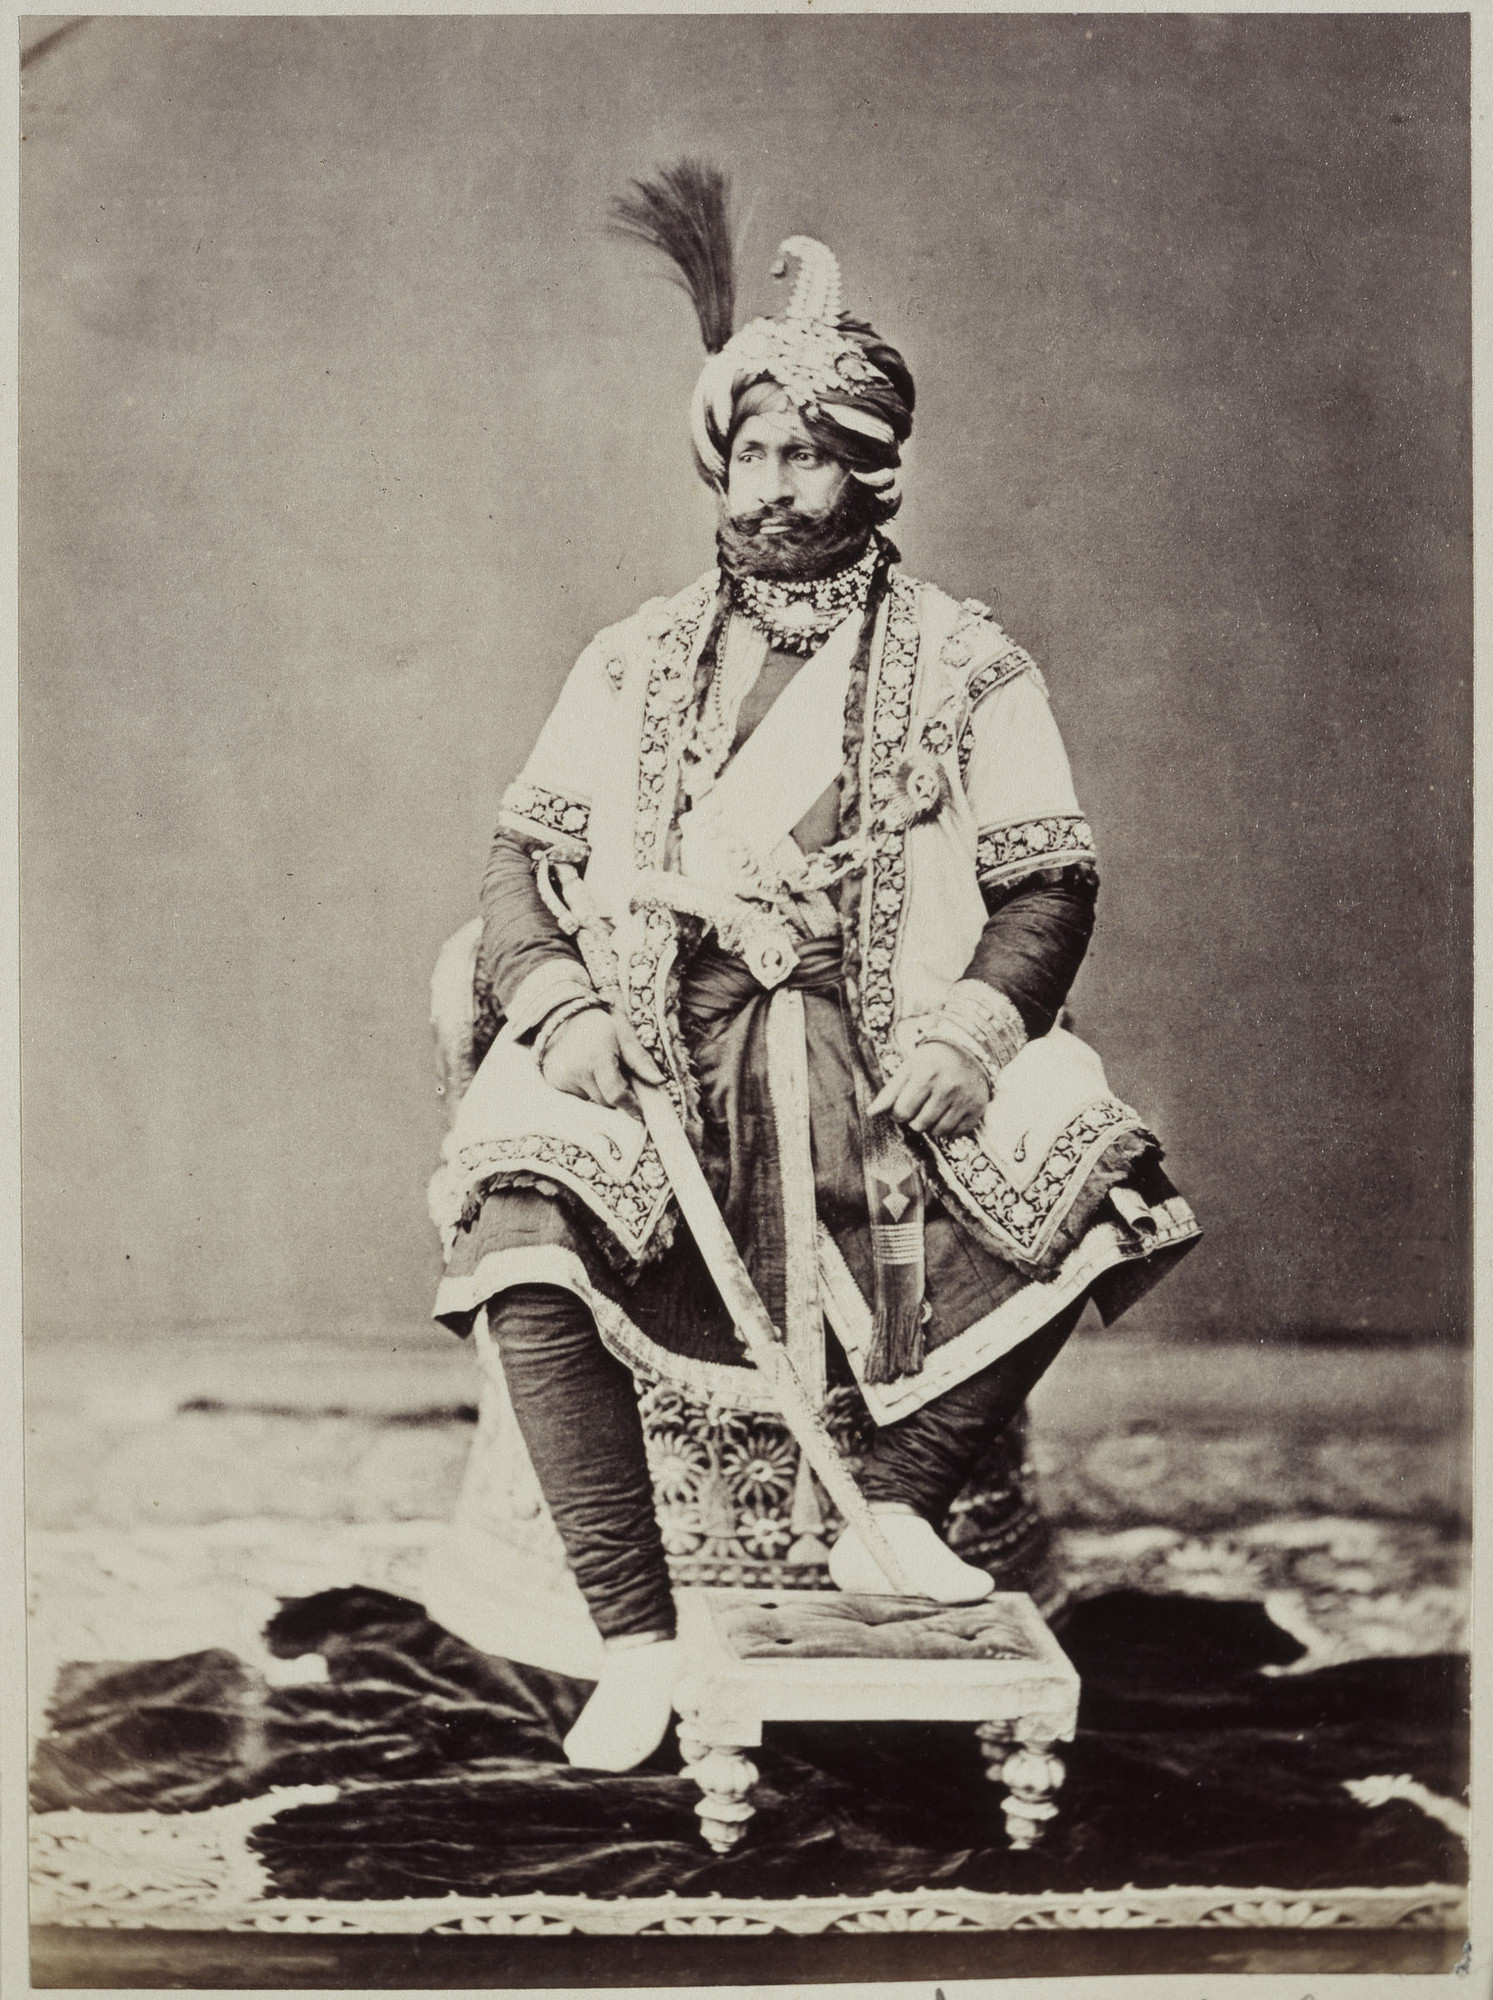 Maharaja Ranbir Singh, the Dogra Ruler of Jammu and Kashmir state during who's Rule the Dogra Kingdom reached it largest extent and also included Chitral